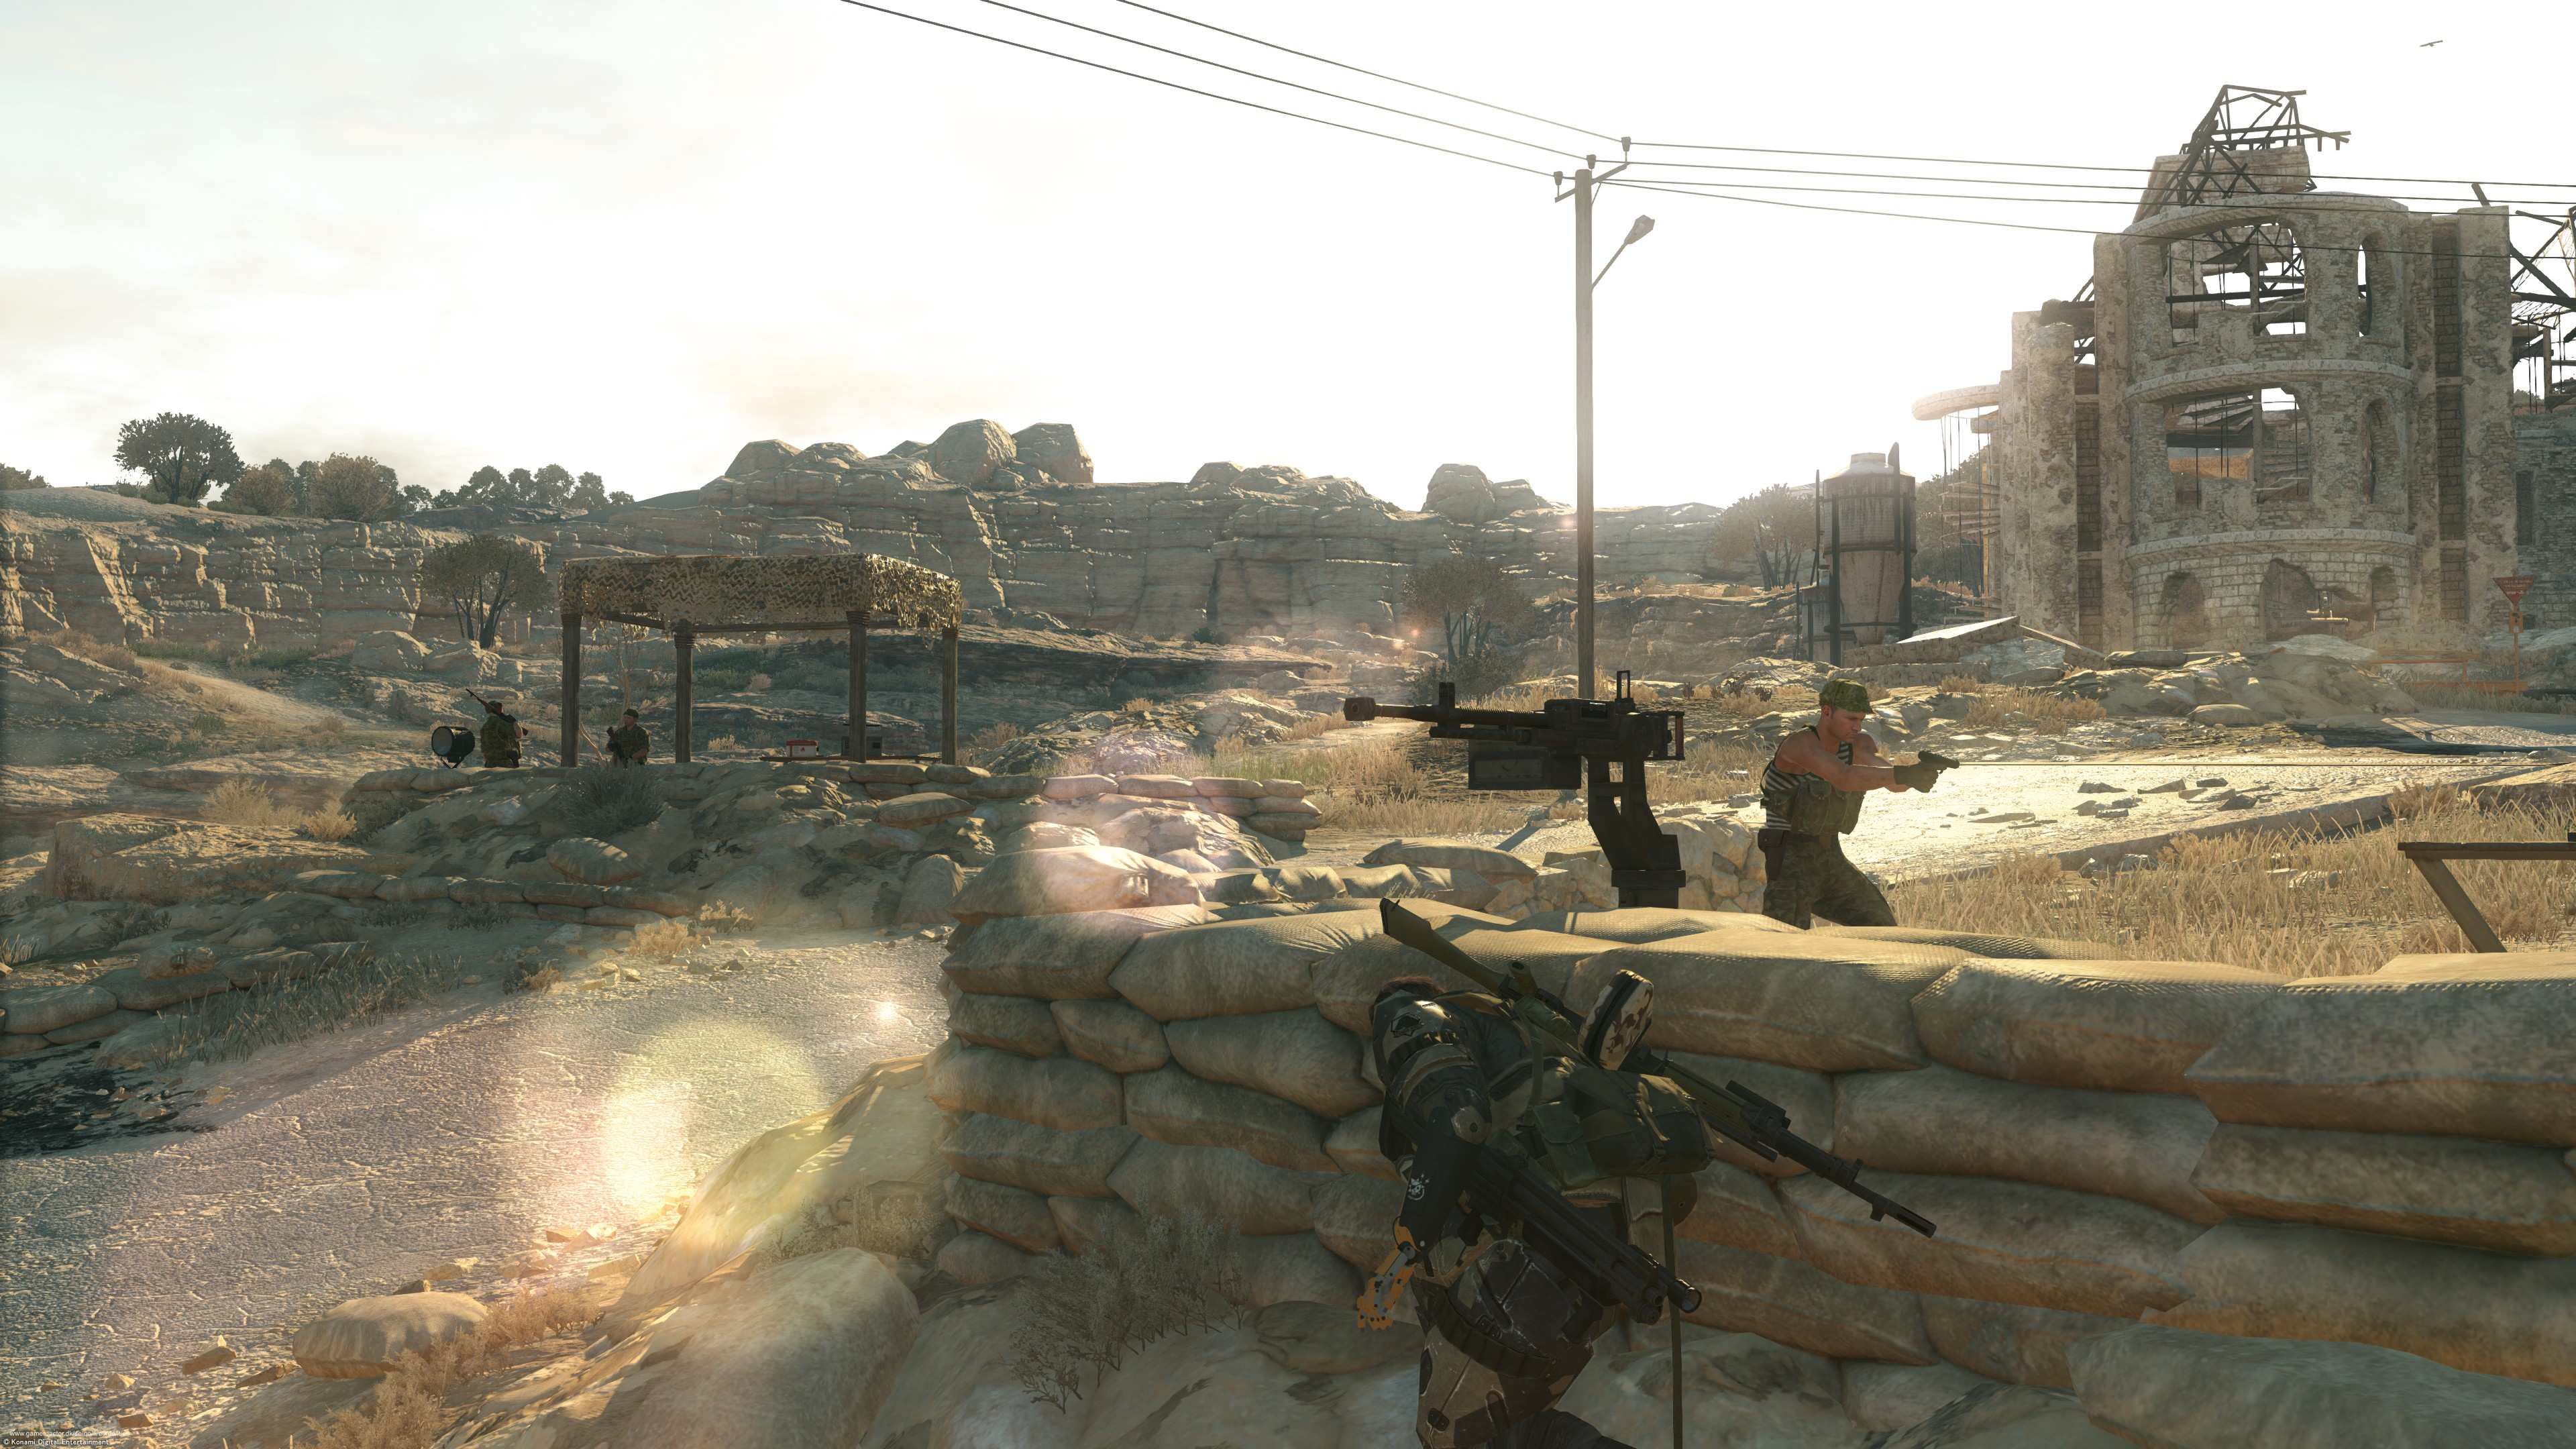 Pictures Of Metal Gear Solid V Review Impressions 1 4 Definitive Edtn Region 2 Enlarge Picture